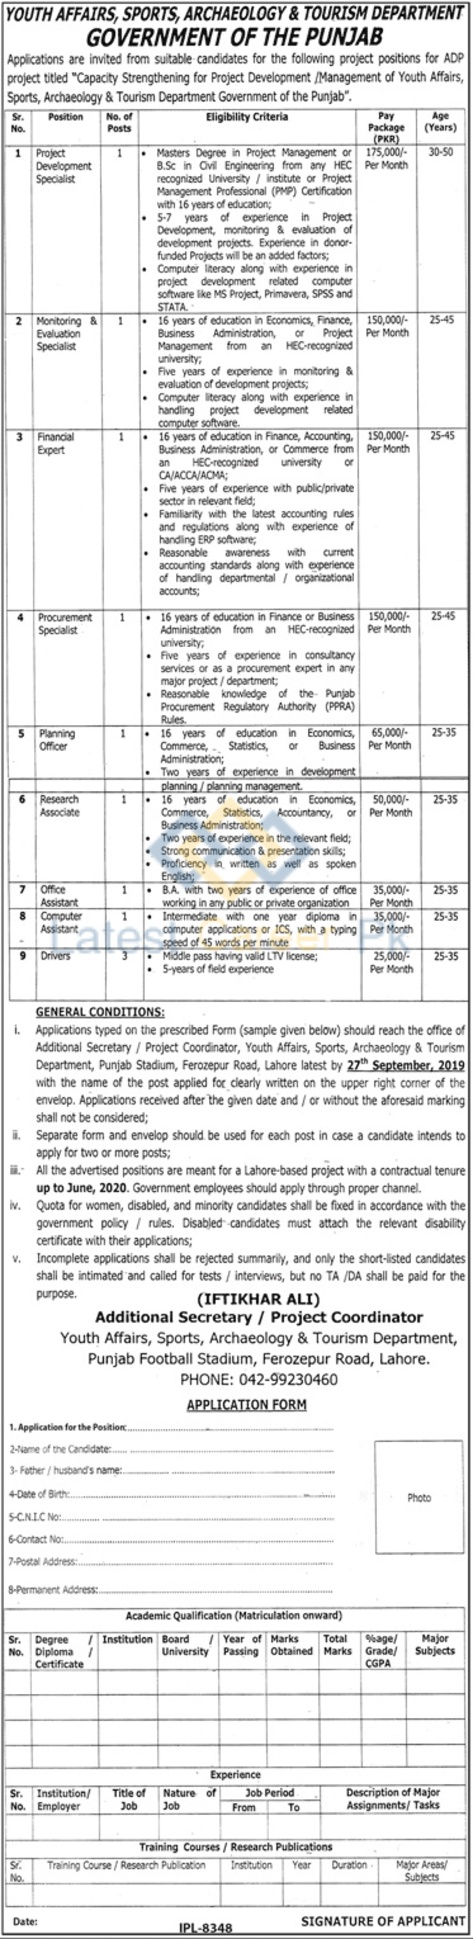 Govt-of-Punjab-Sports-Archaeology-and-Tourism-Department-Lahore-Jobs-13-Sep-2019